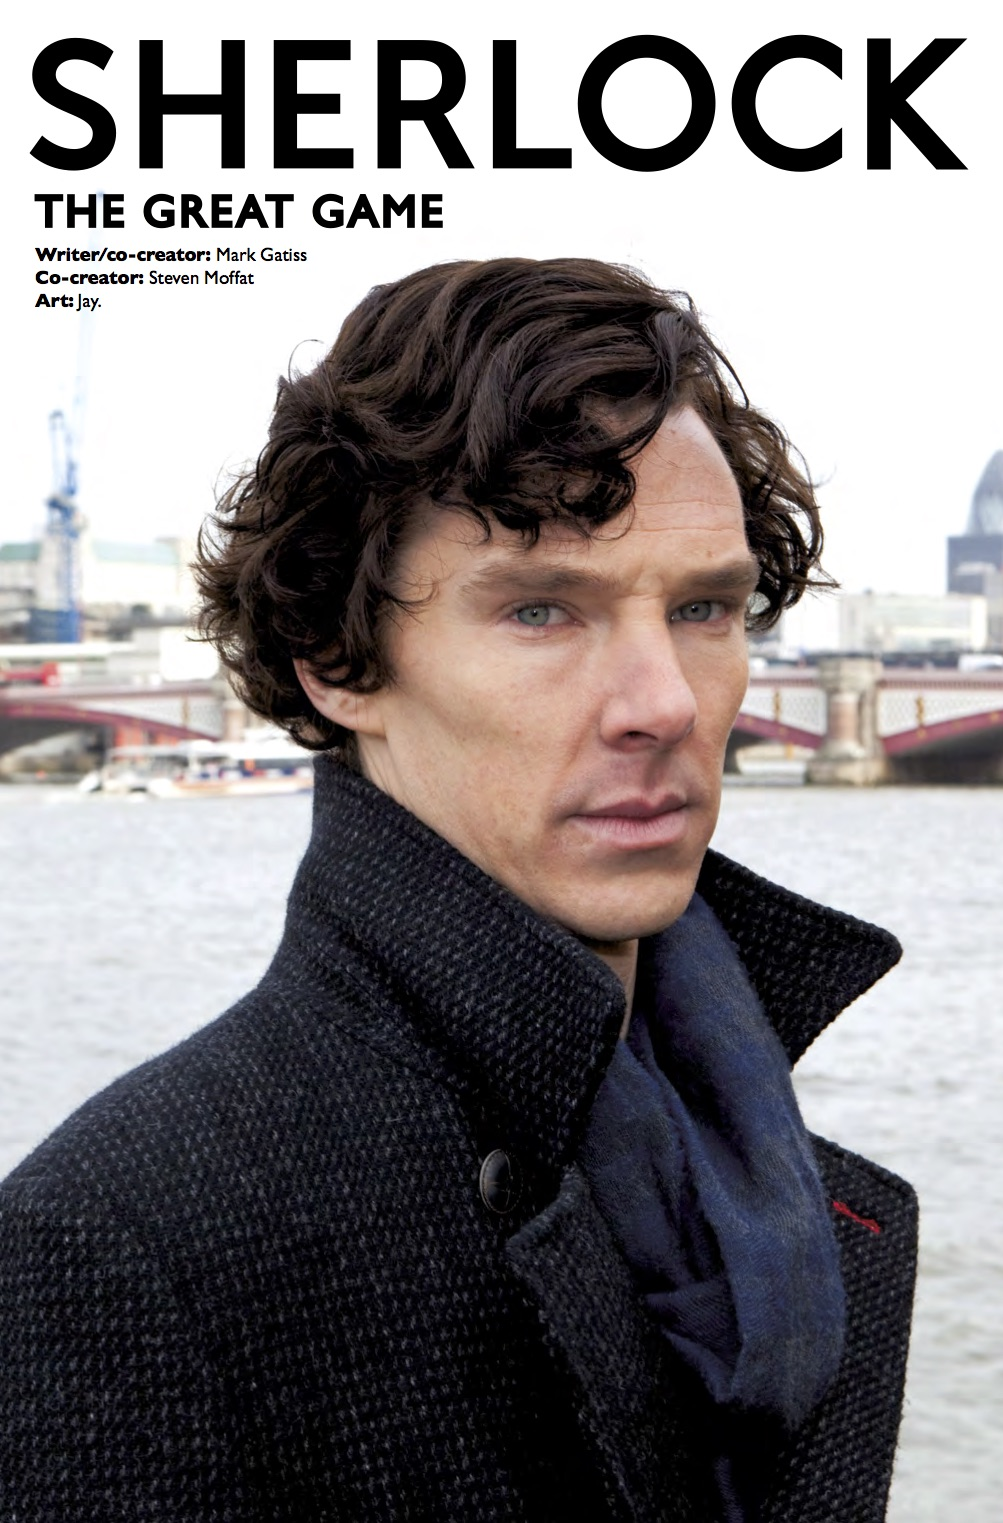 Sherlock: The Great Game #1 - Cover B